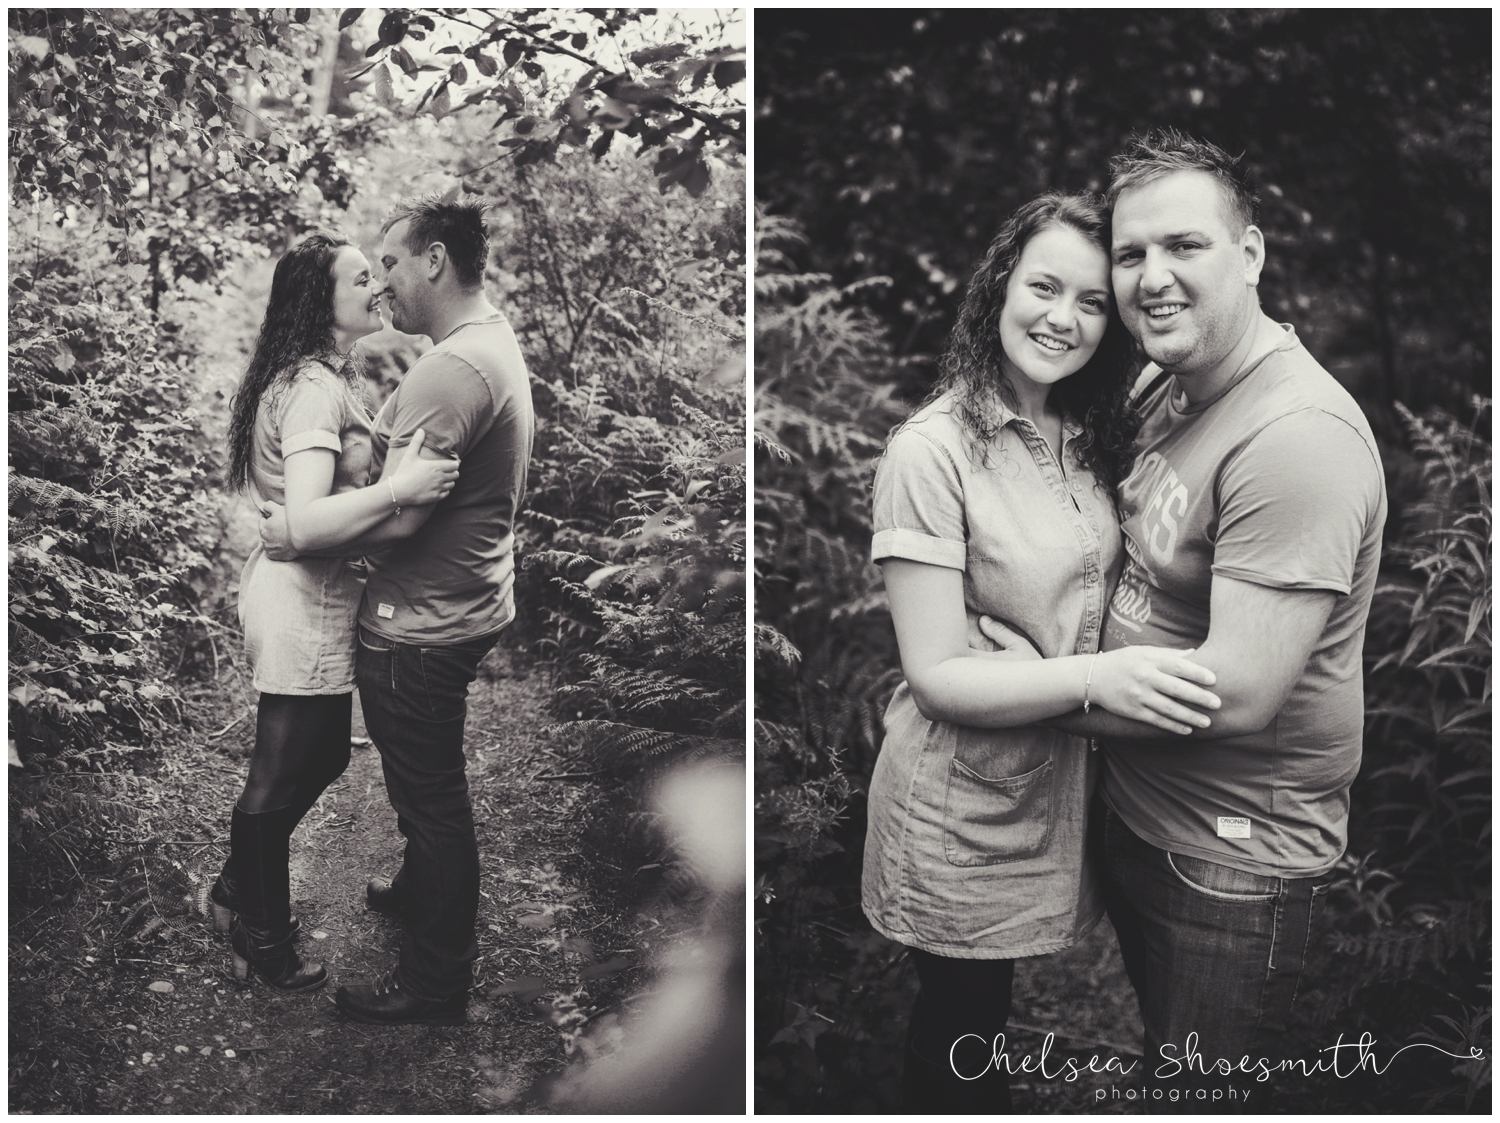 (38 of 75) Bethan & Peter Engagement Shoot Cheshire, Delamere Forest Chelsea Shoesmith Photography